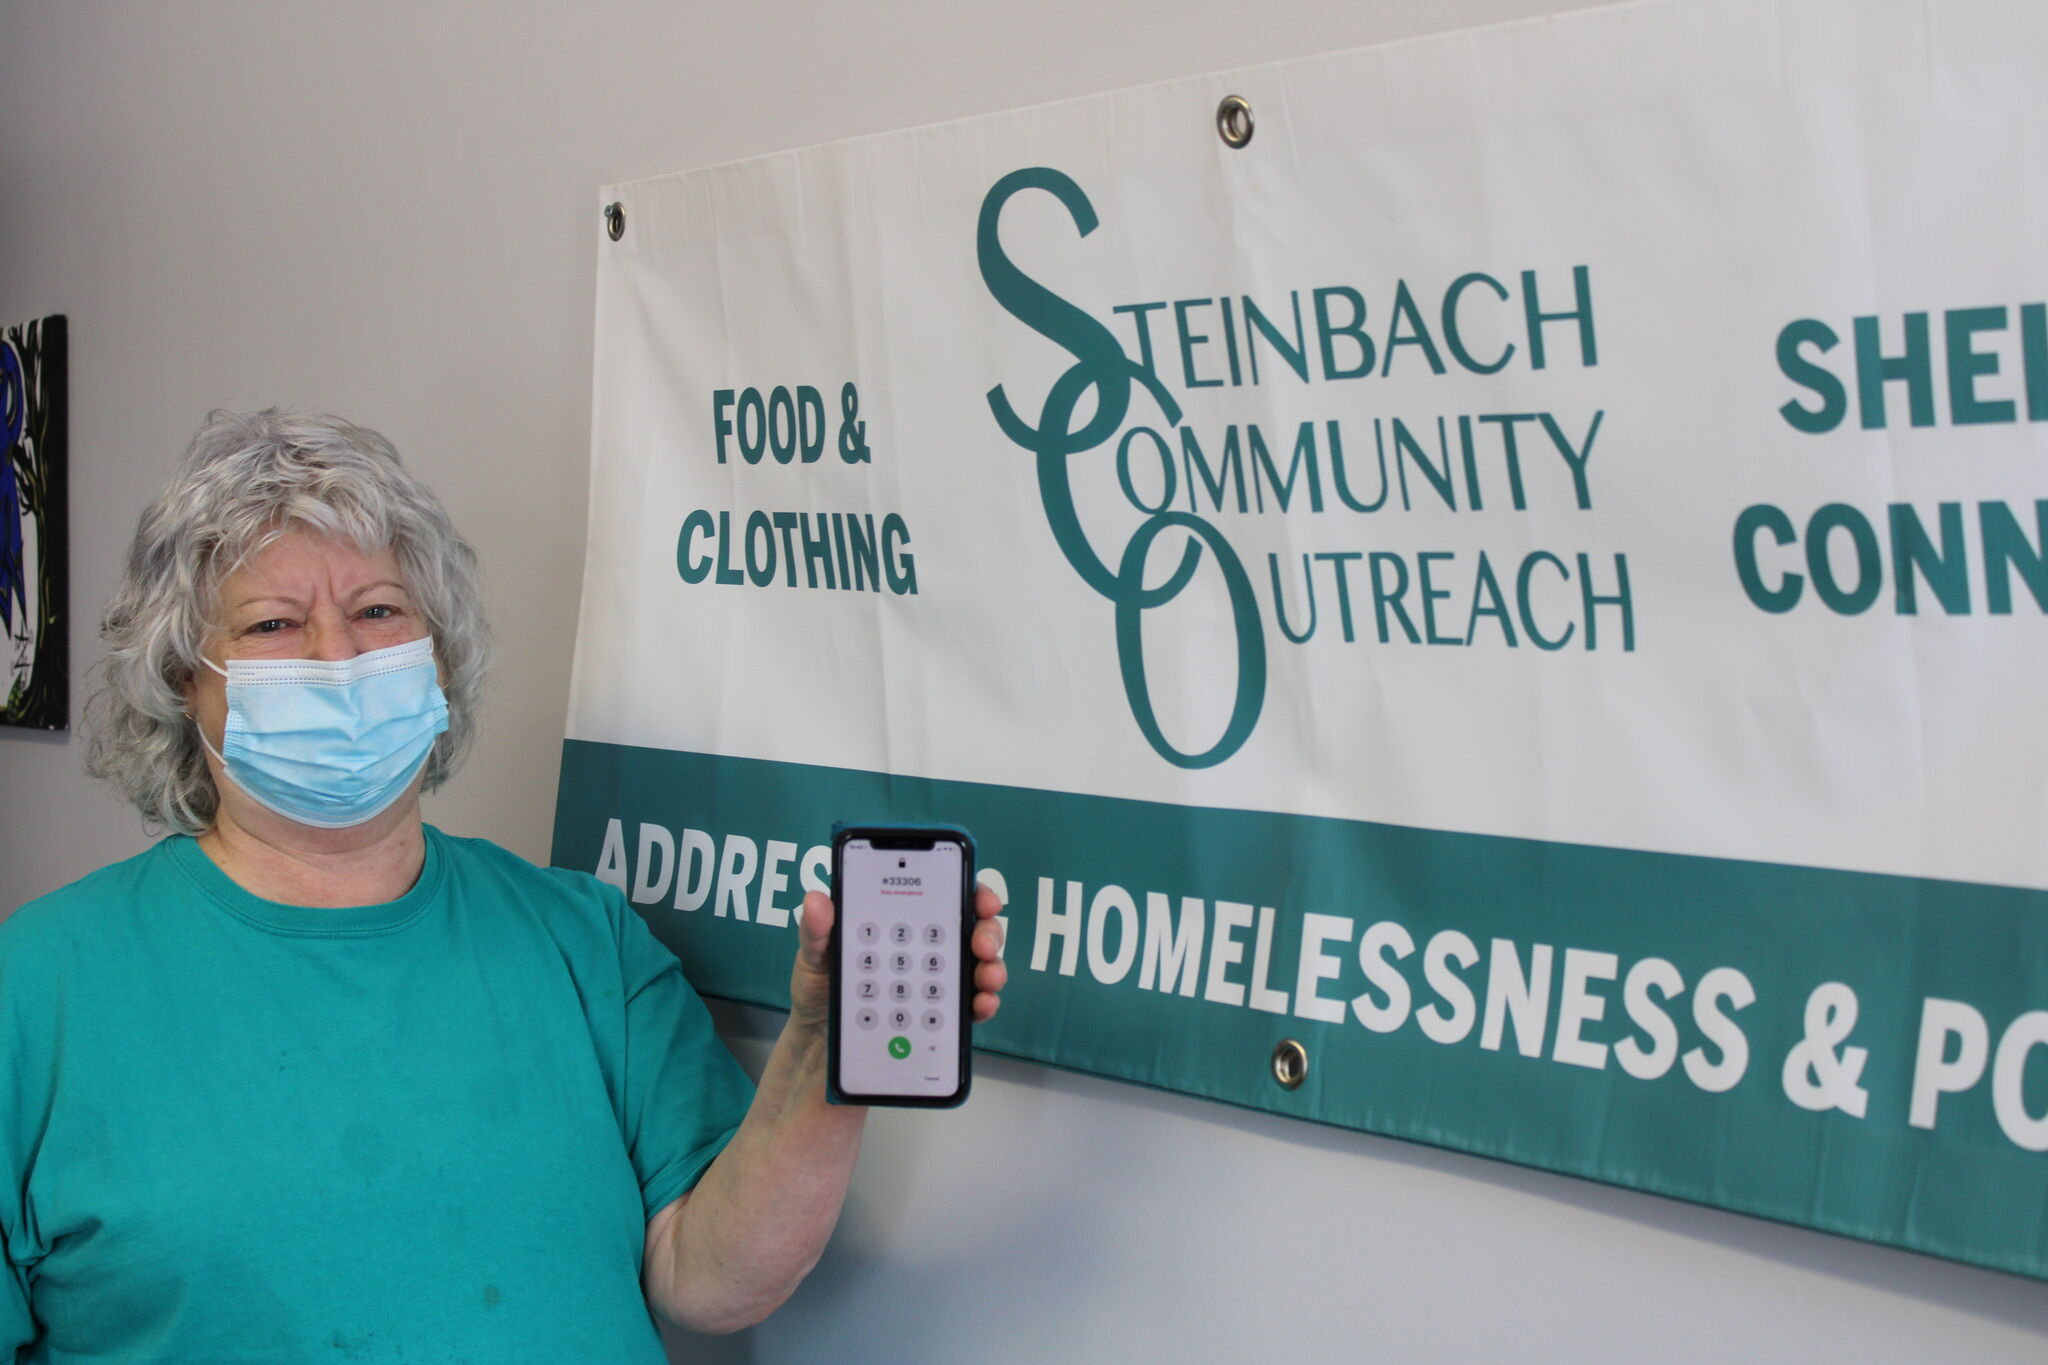 SCO Executive Director Irene Kroeker said used cell phones are needed to allow their clients to access the services they need.